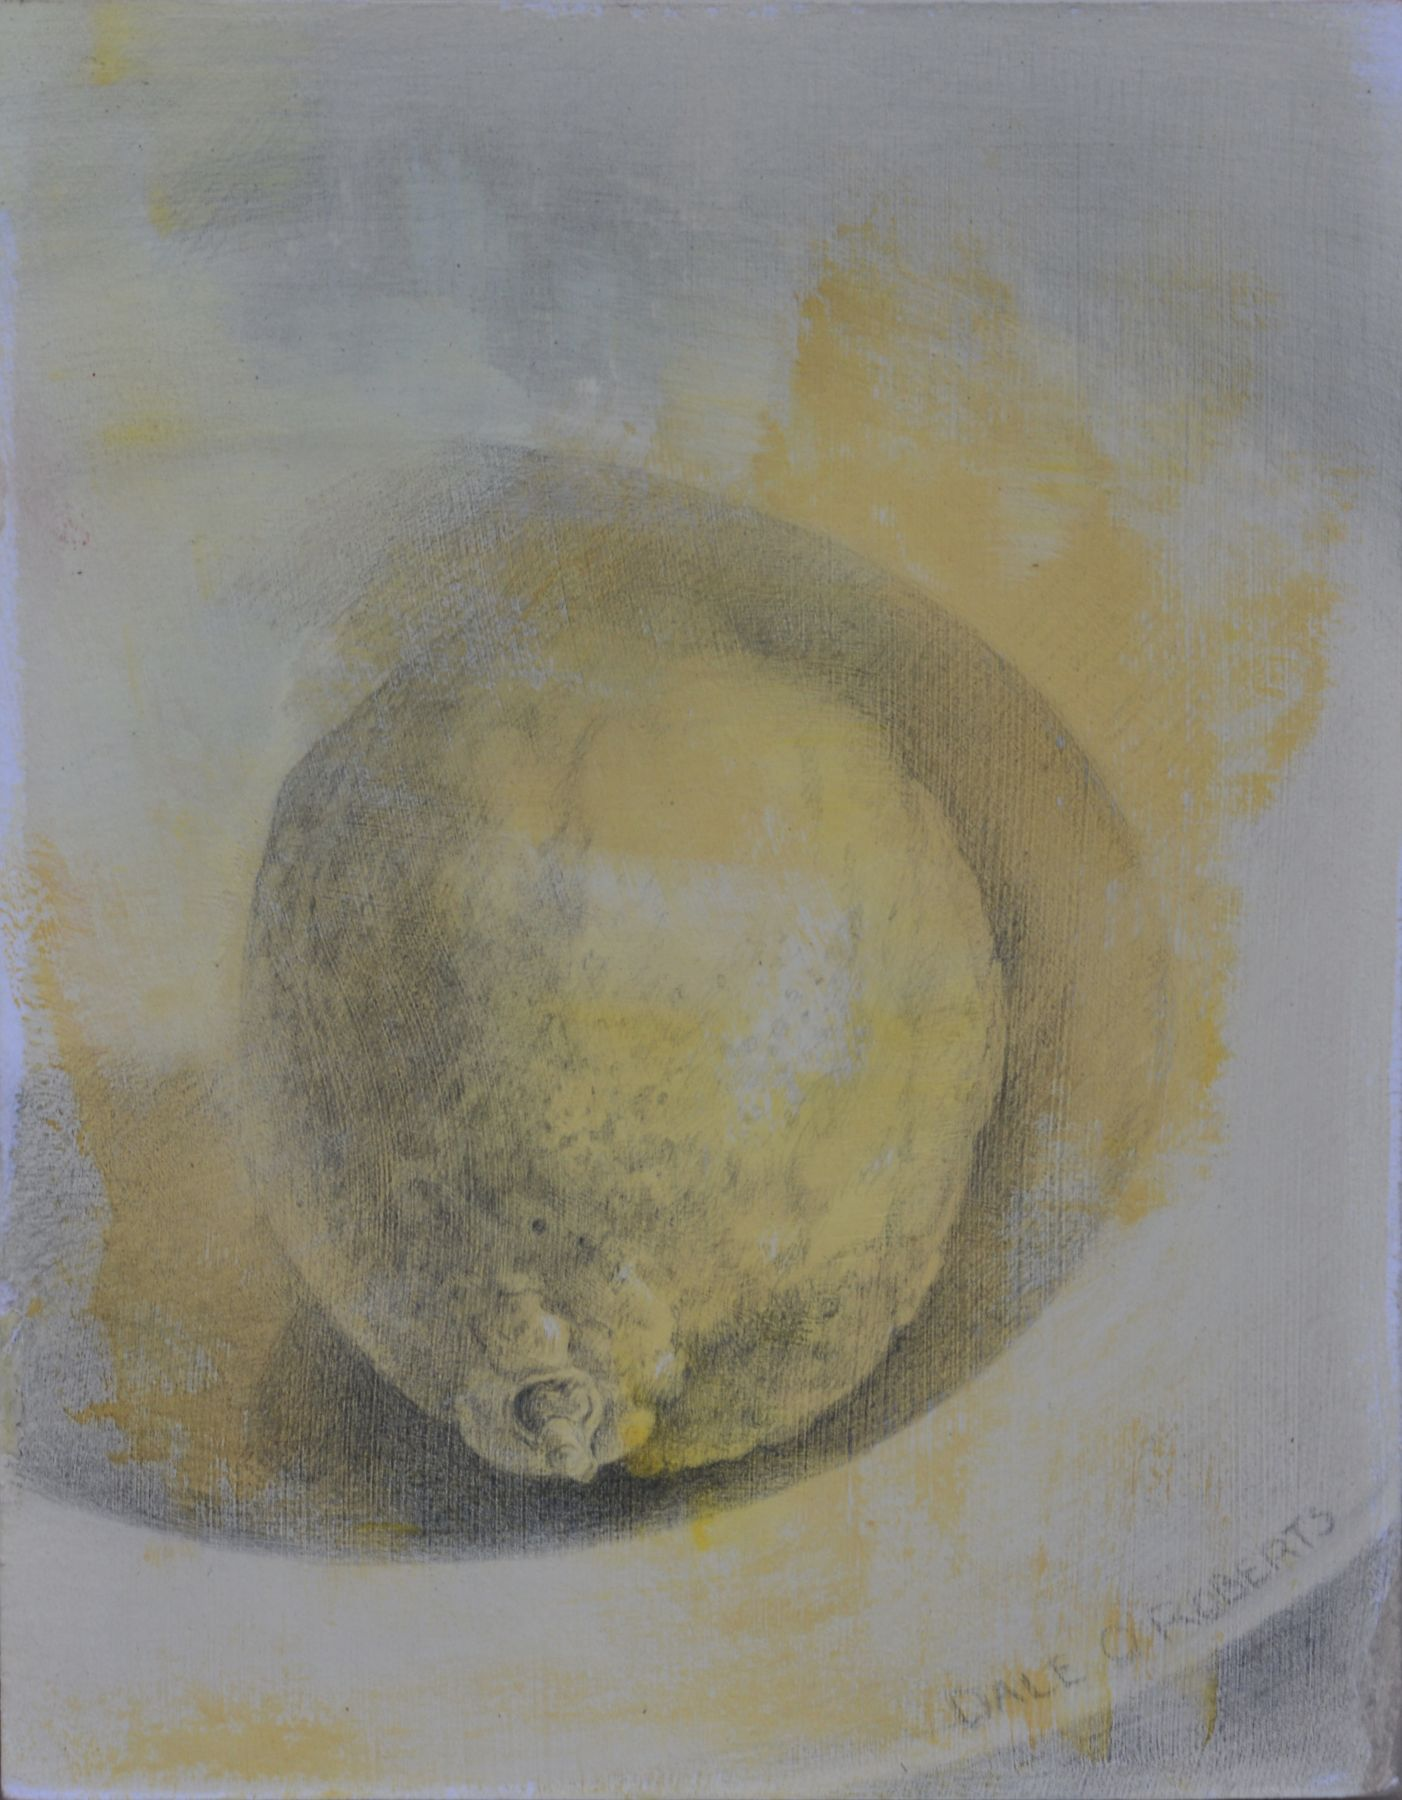 "Lemon, 5.75"" x 4.5"", Silverpoint With Wash"